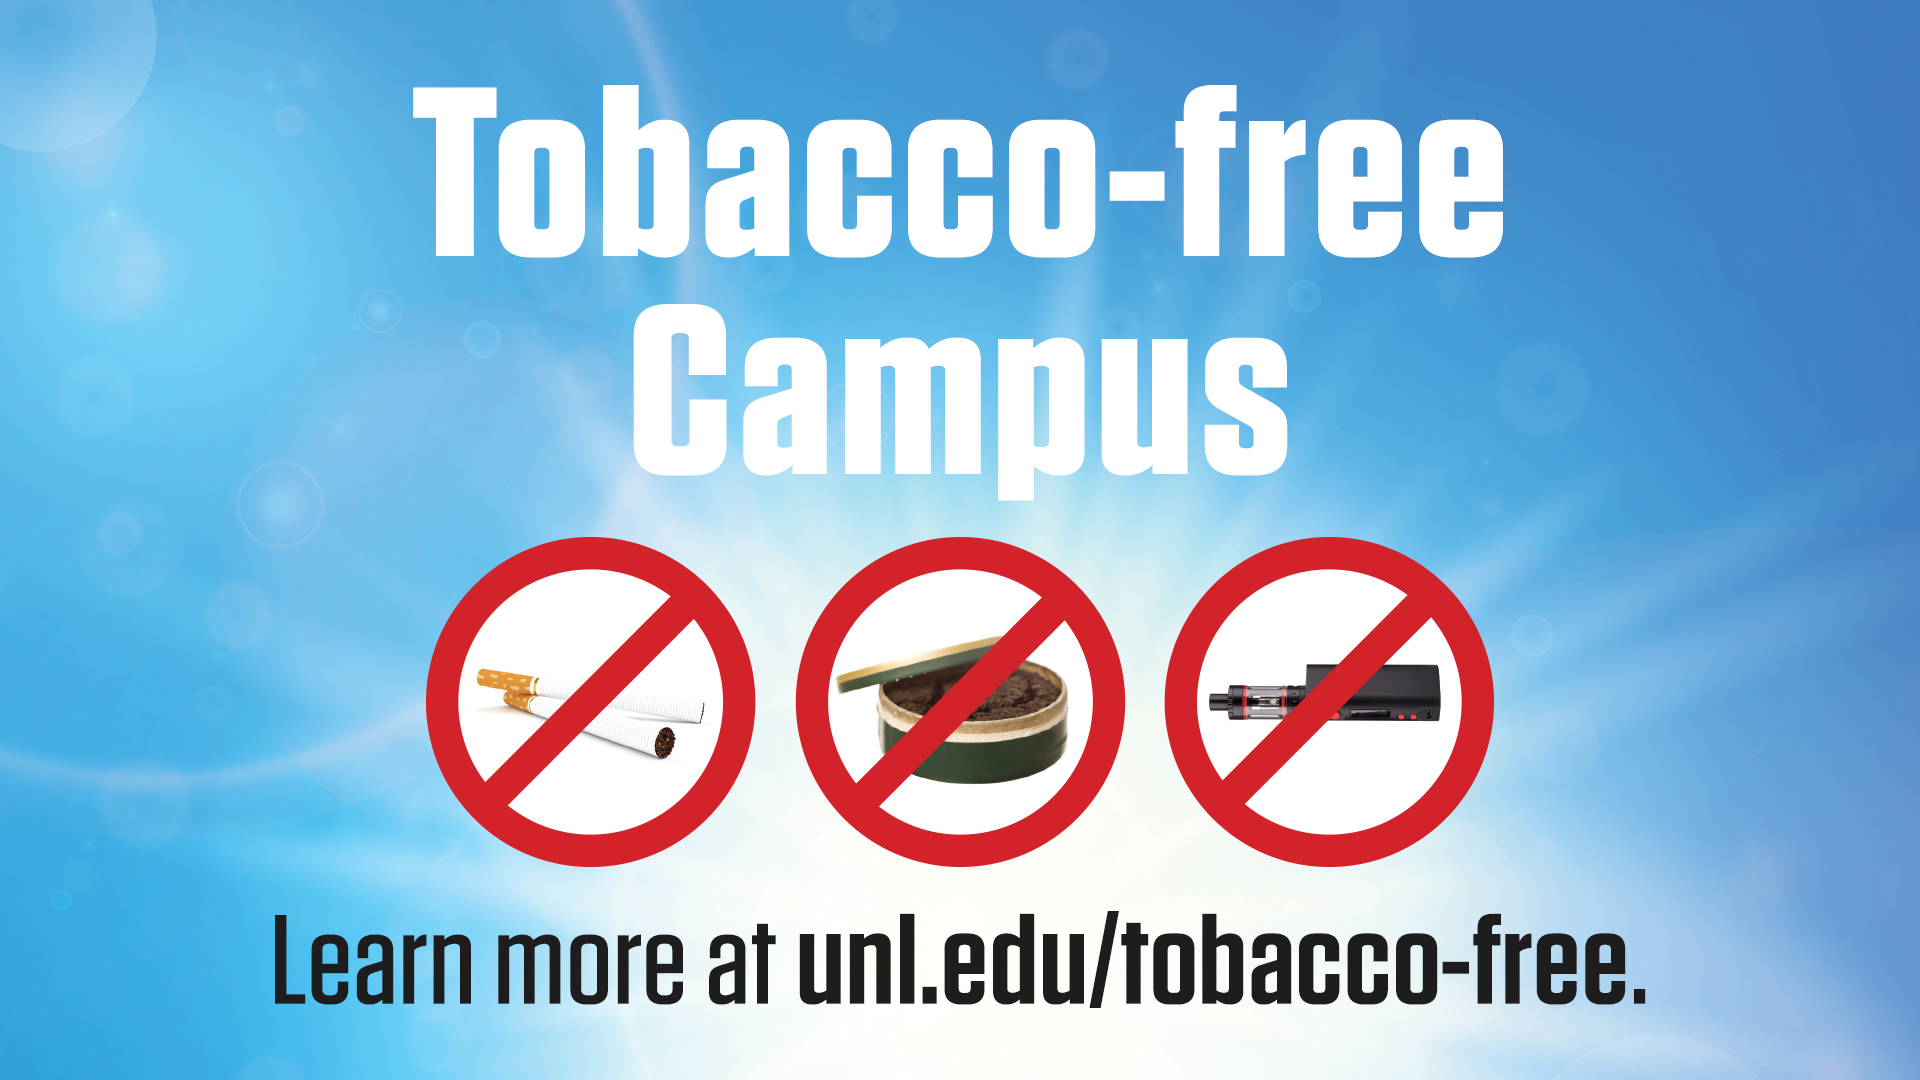 Tobacco Free In